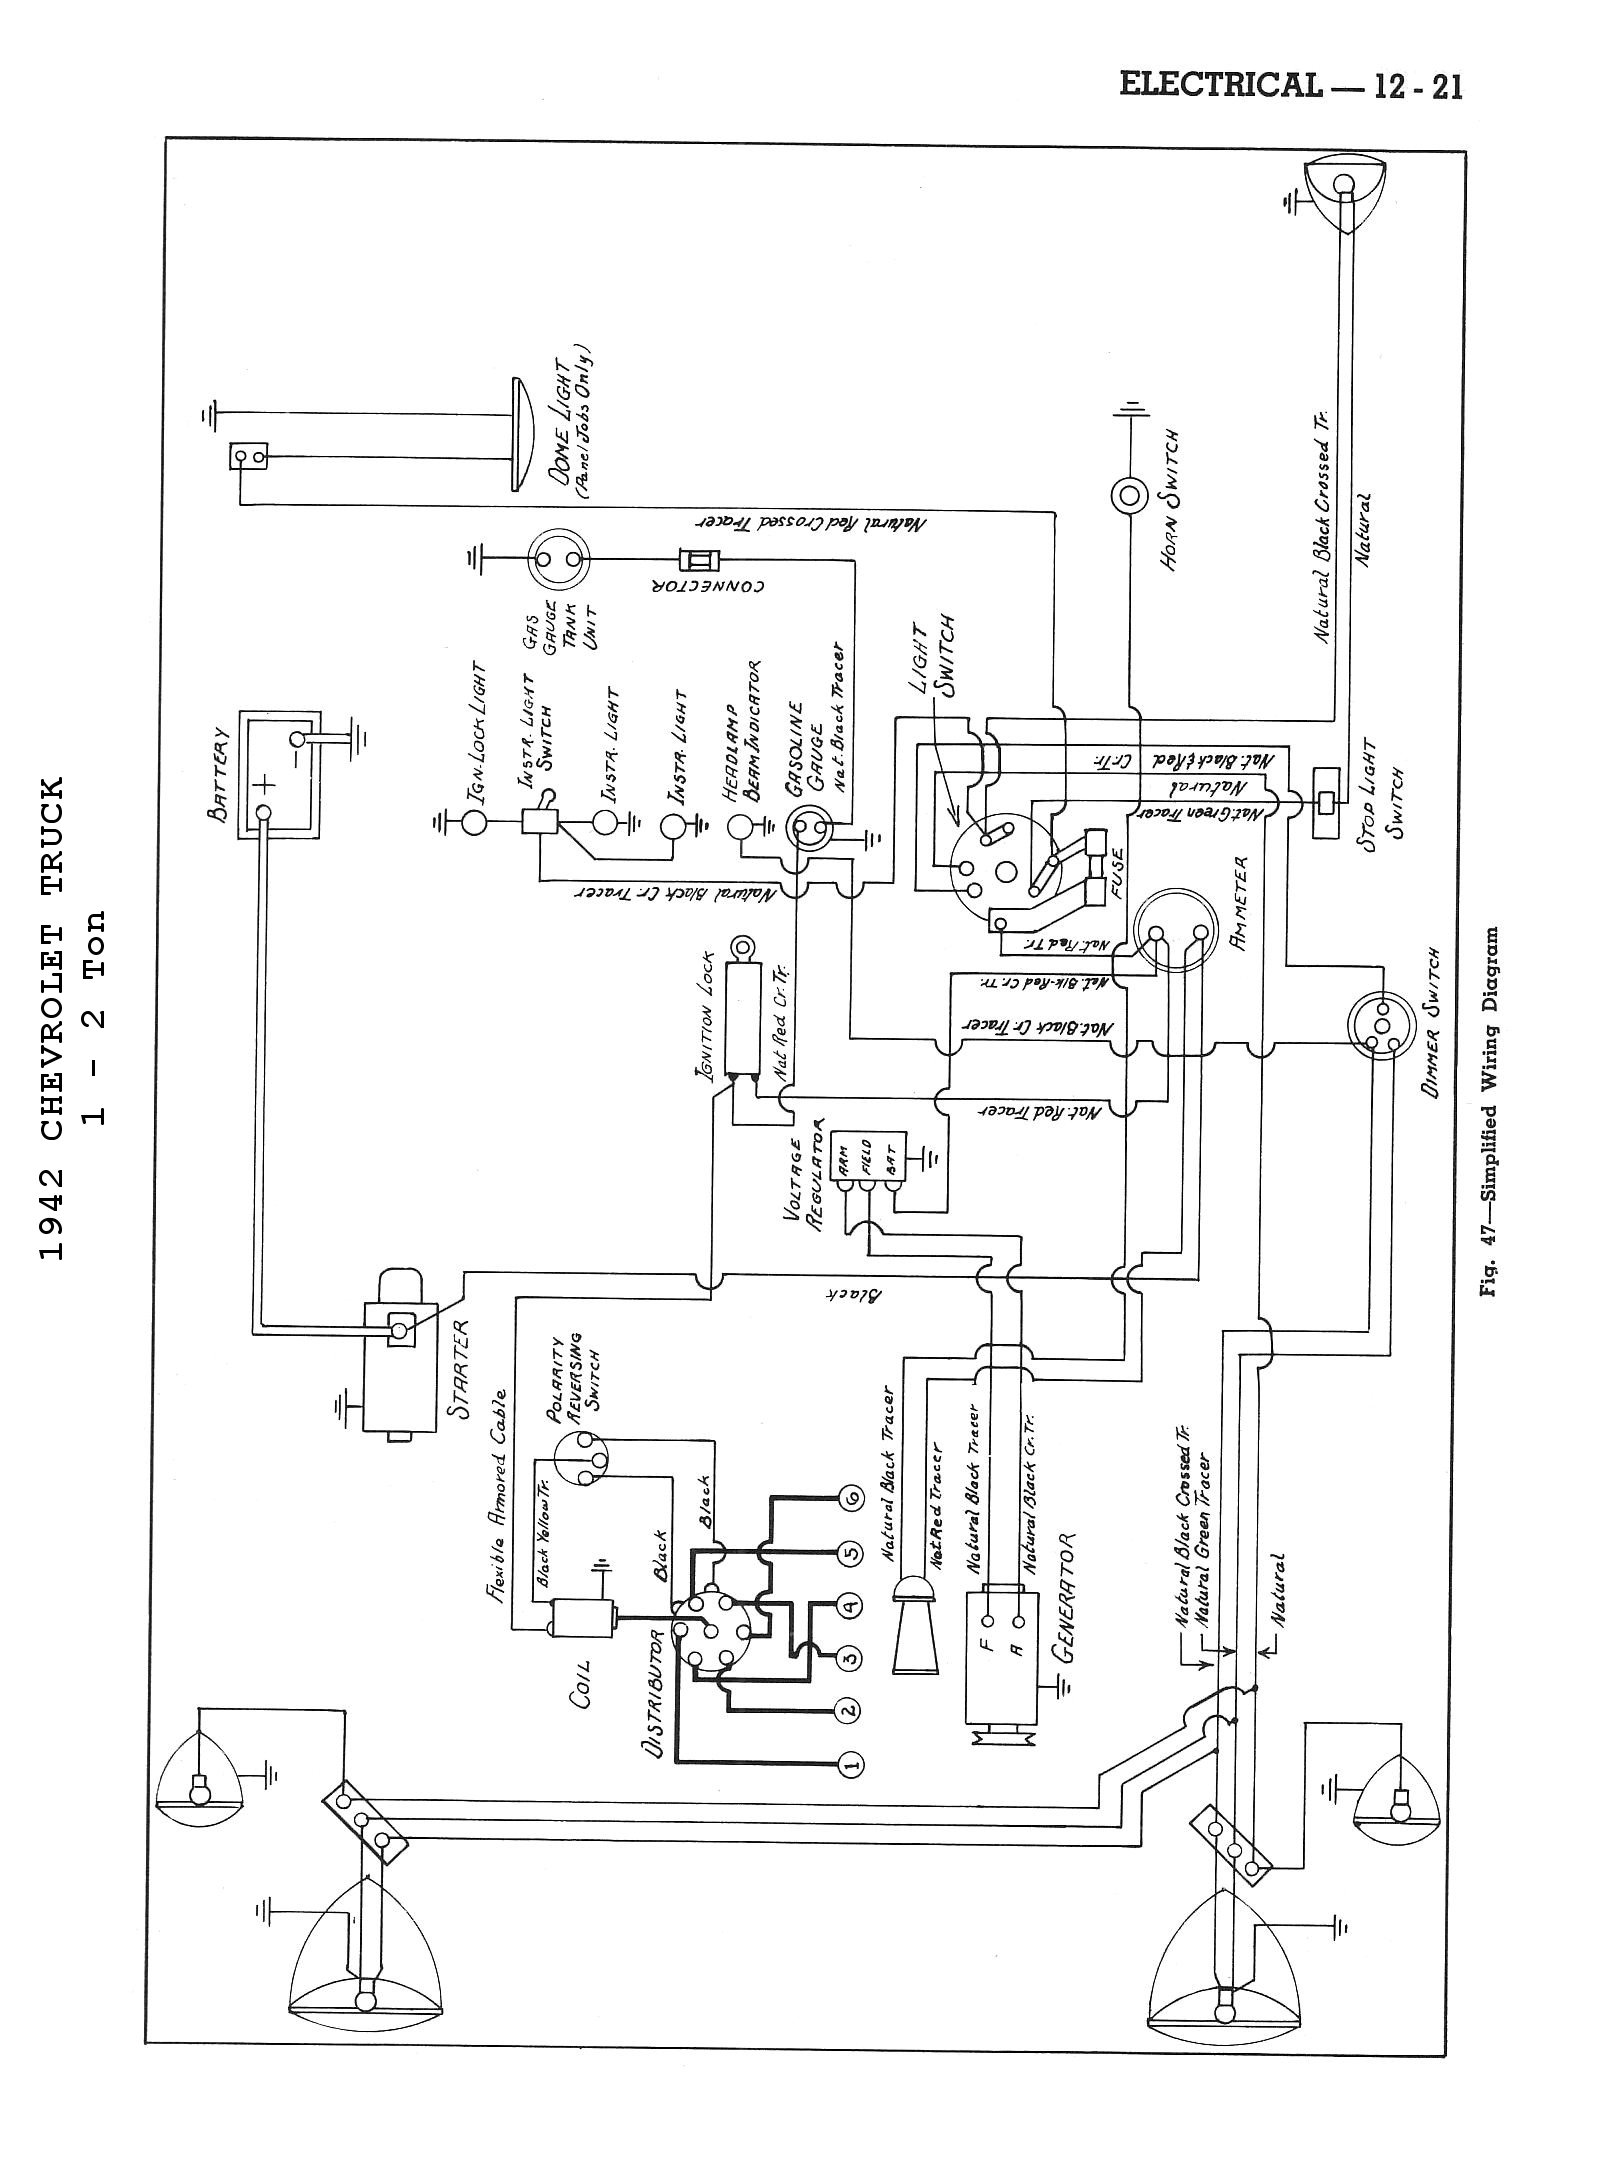 1958 Chevy Turn Signal Wiring Diagram - Wiring Source •